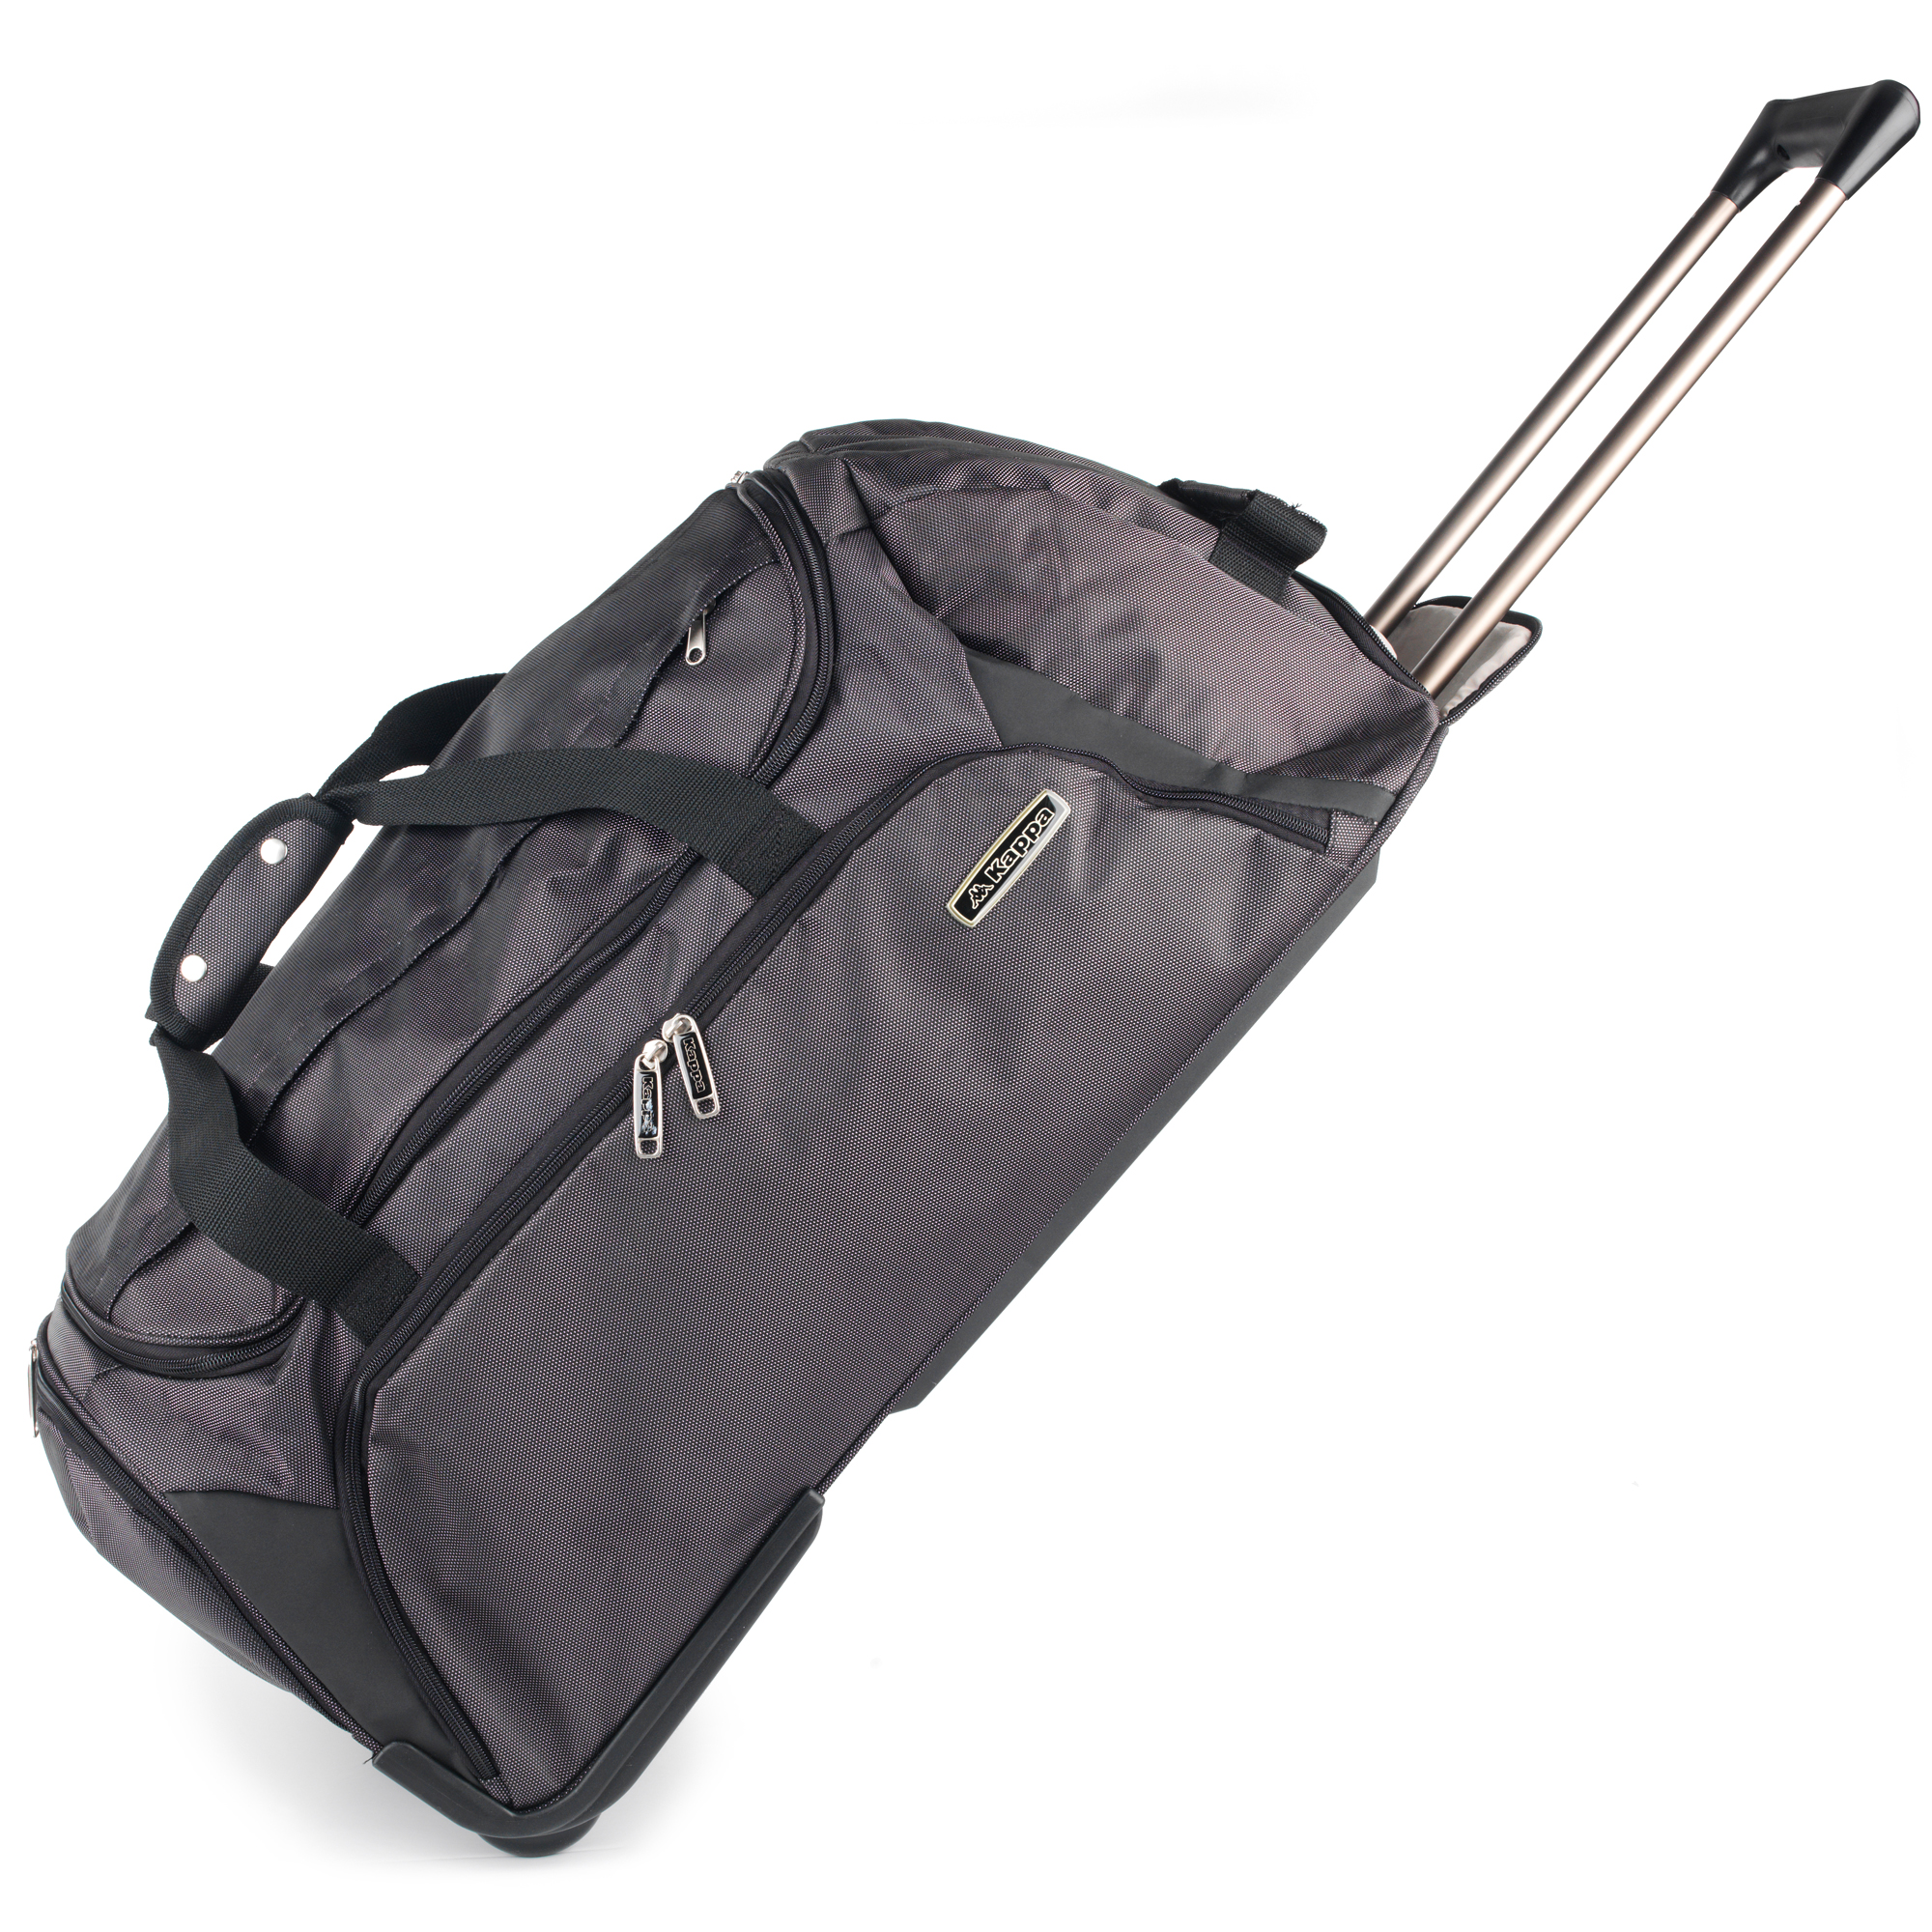 Kappa Wheeled Travel Bag 1904503 | Luggage & Sport Bags ...